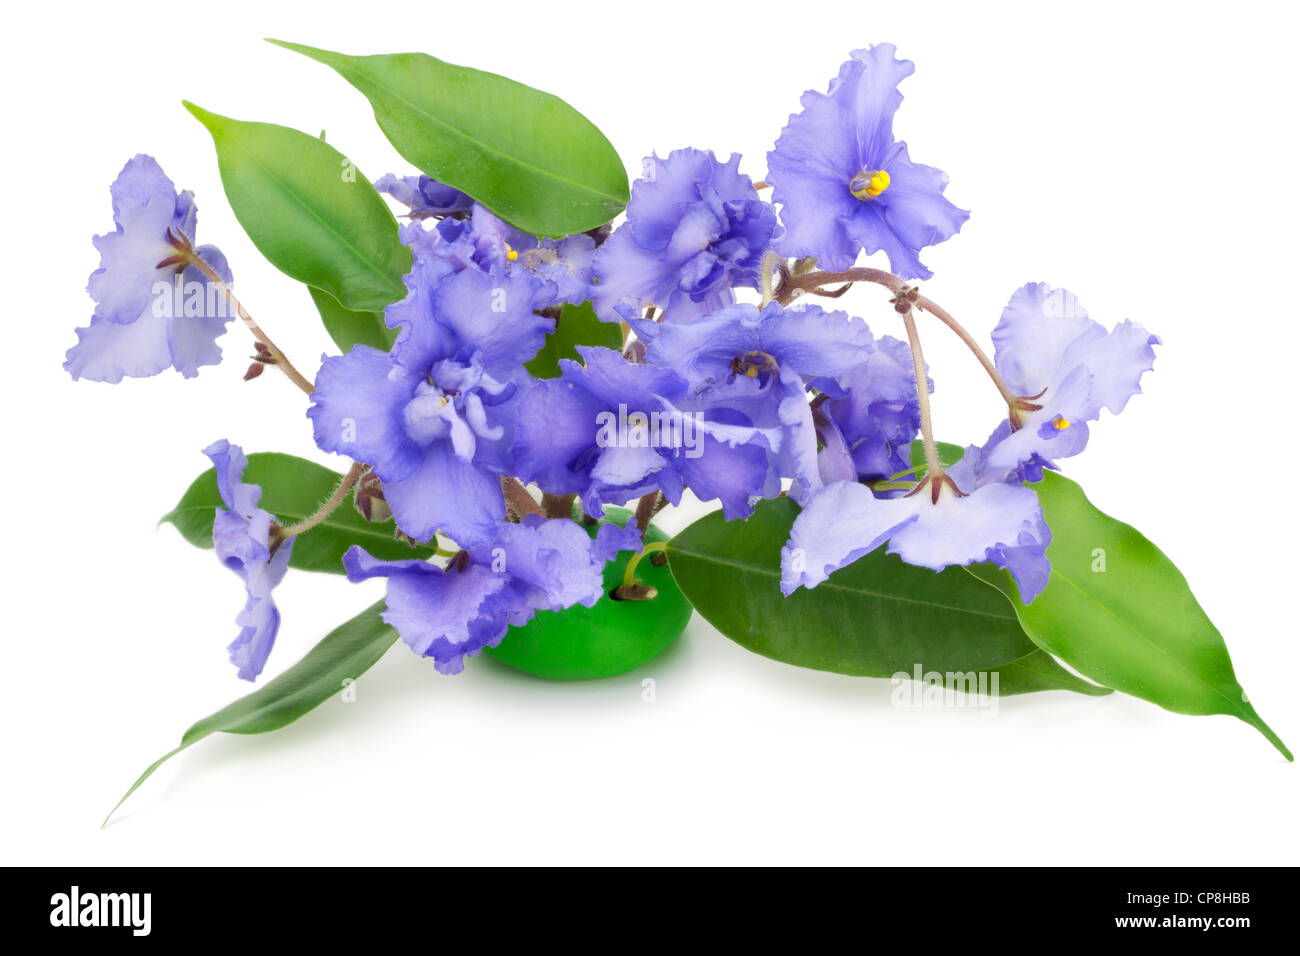 Gentle blue violets flowers isolated on white - Stock Image